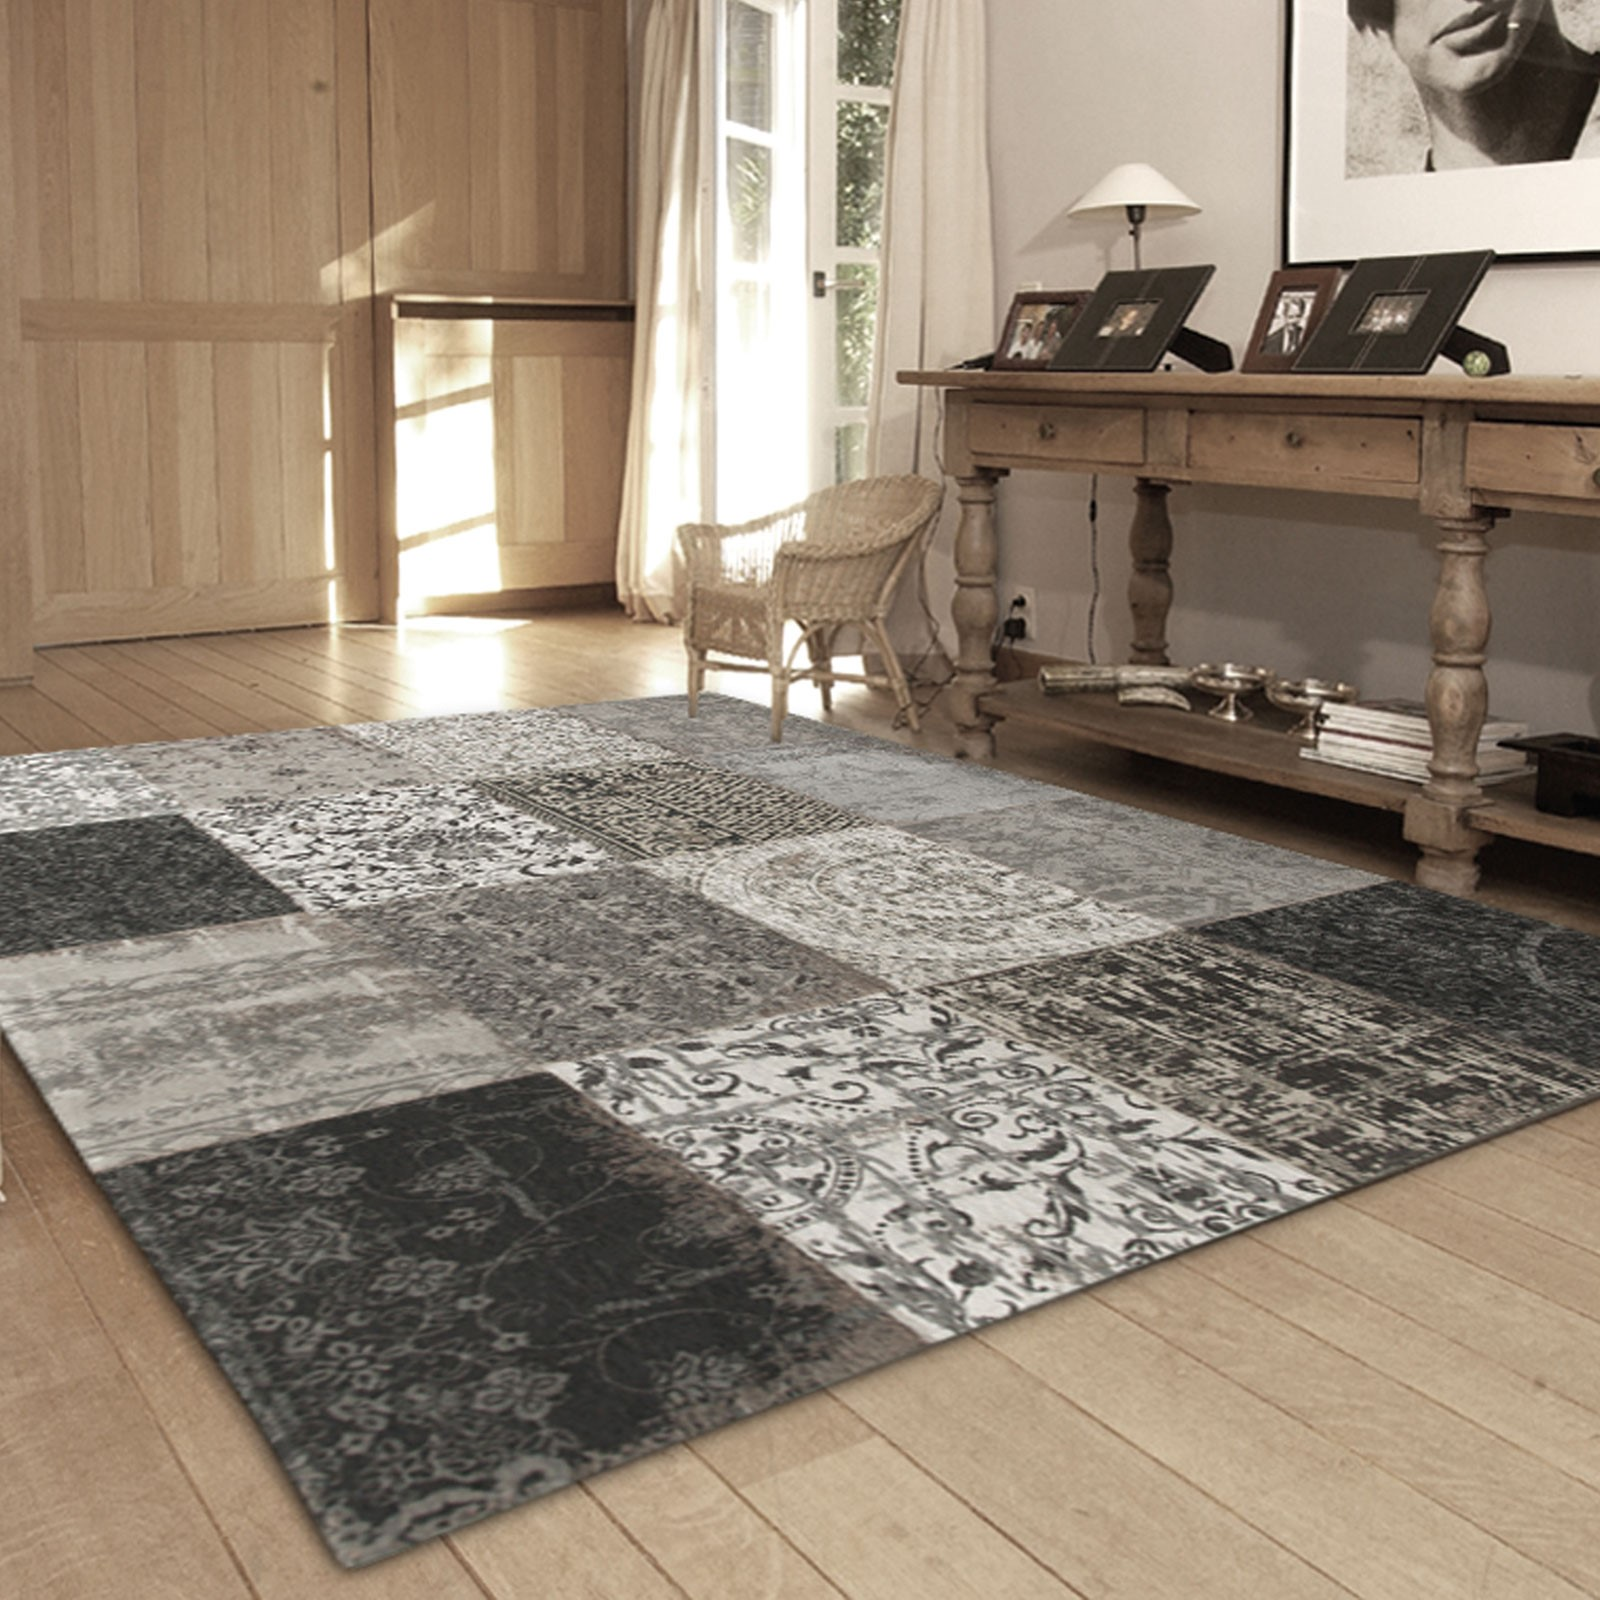 The Fabulous Louis de Poortere Rugs Range